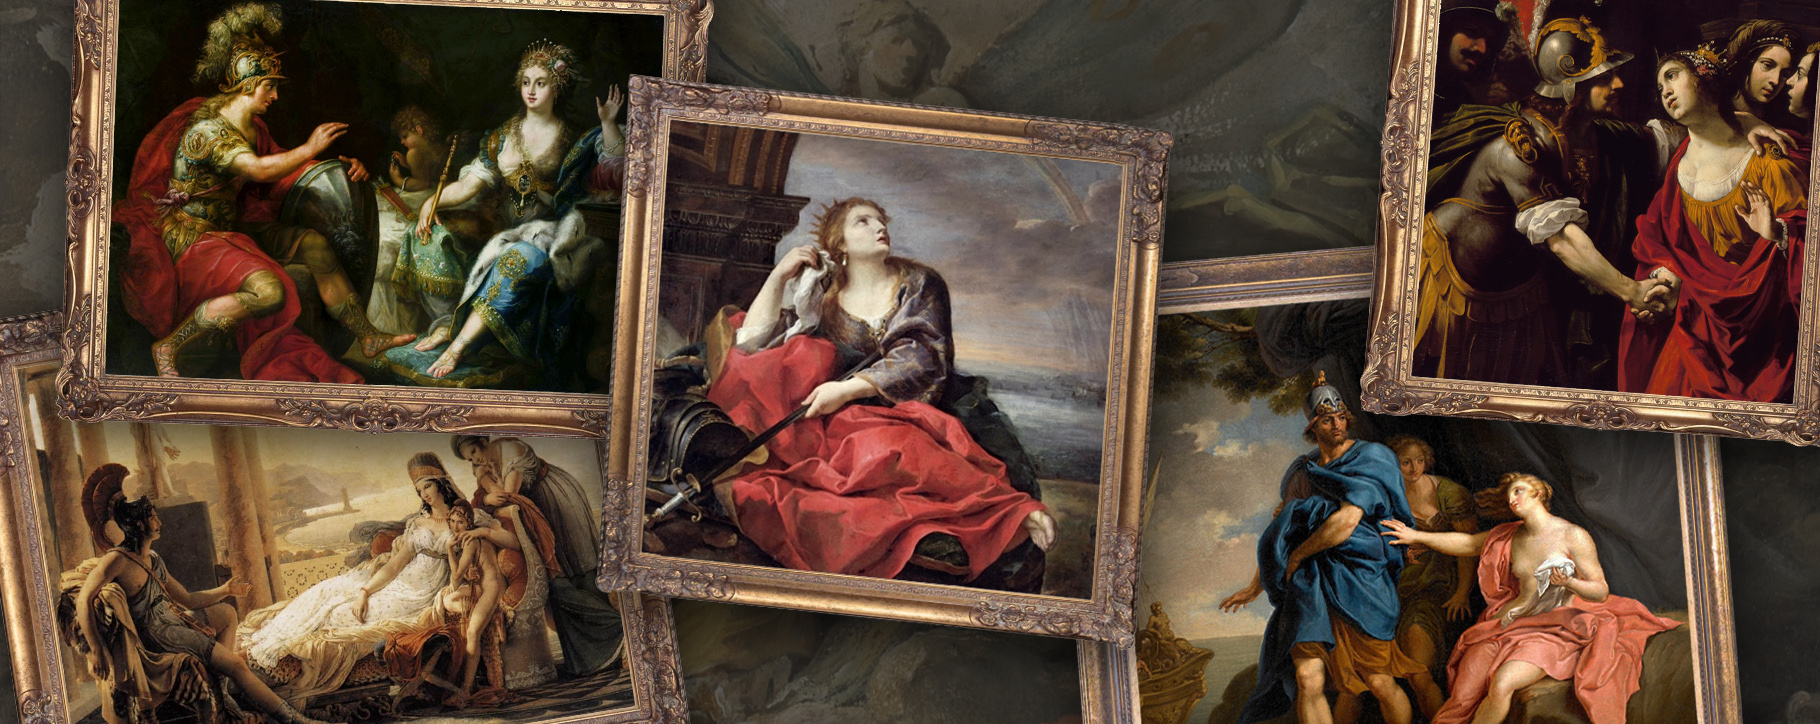 Dido Classical History Paintings